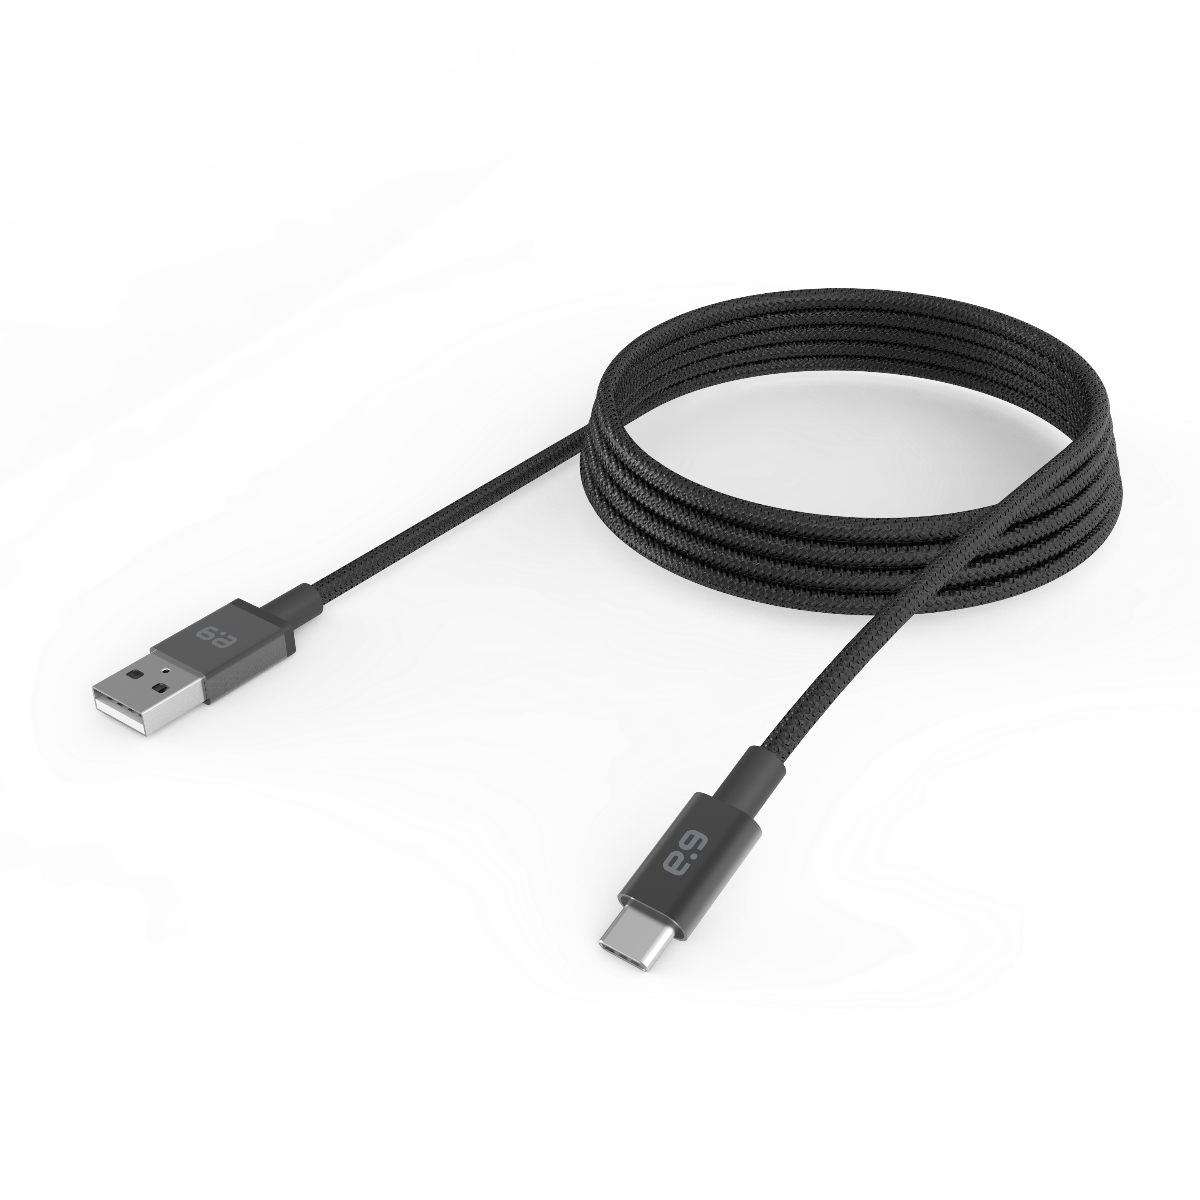 10ft Braided USB-A to USB-C 2.0 Cable - Black